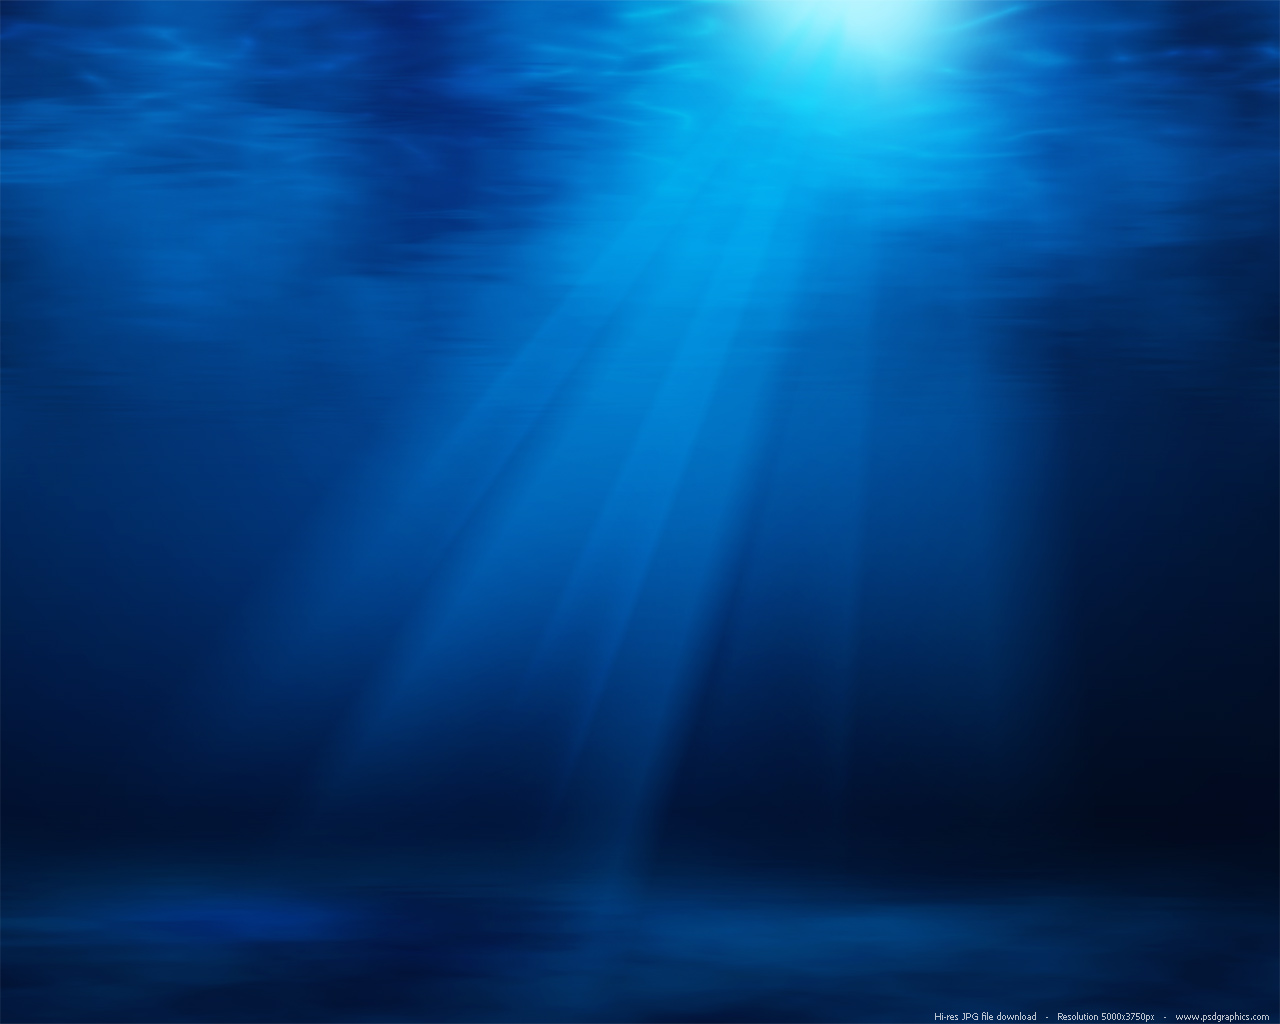 underwater ocean scene picture backgrounds for powerpoint templates